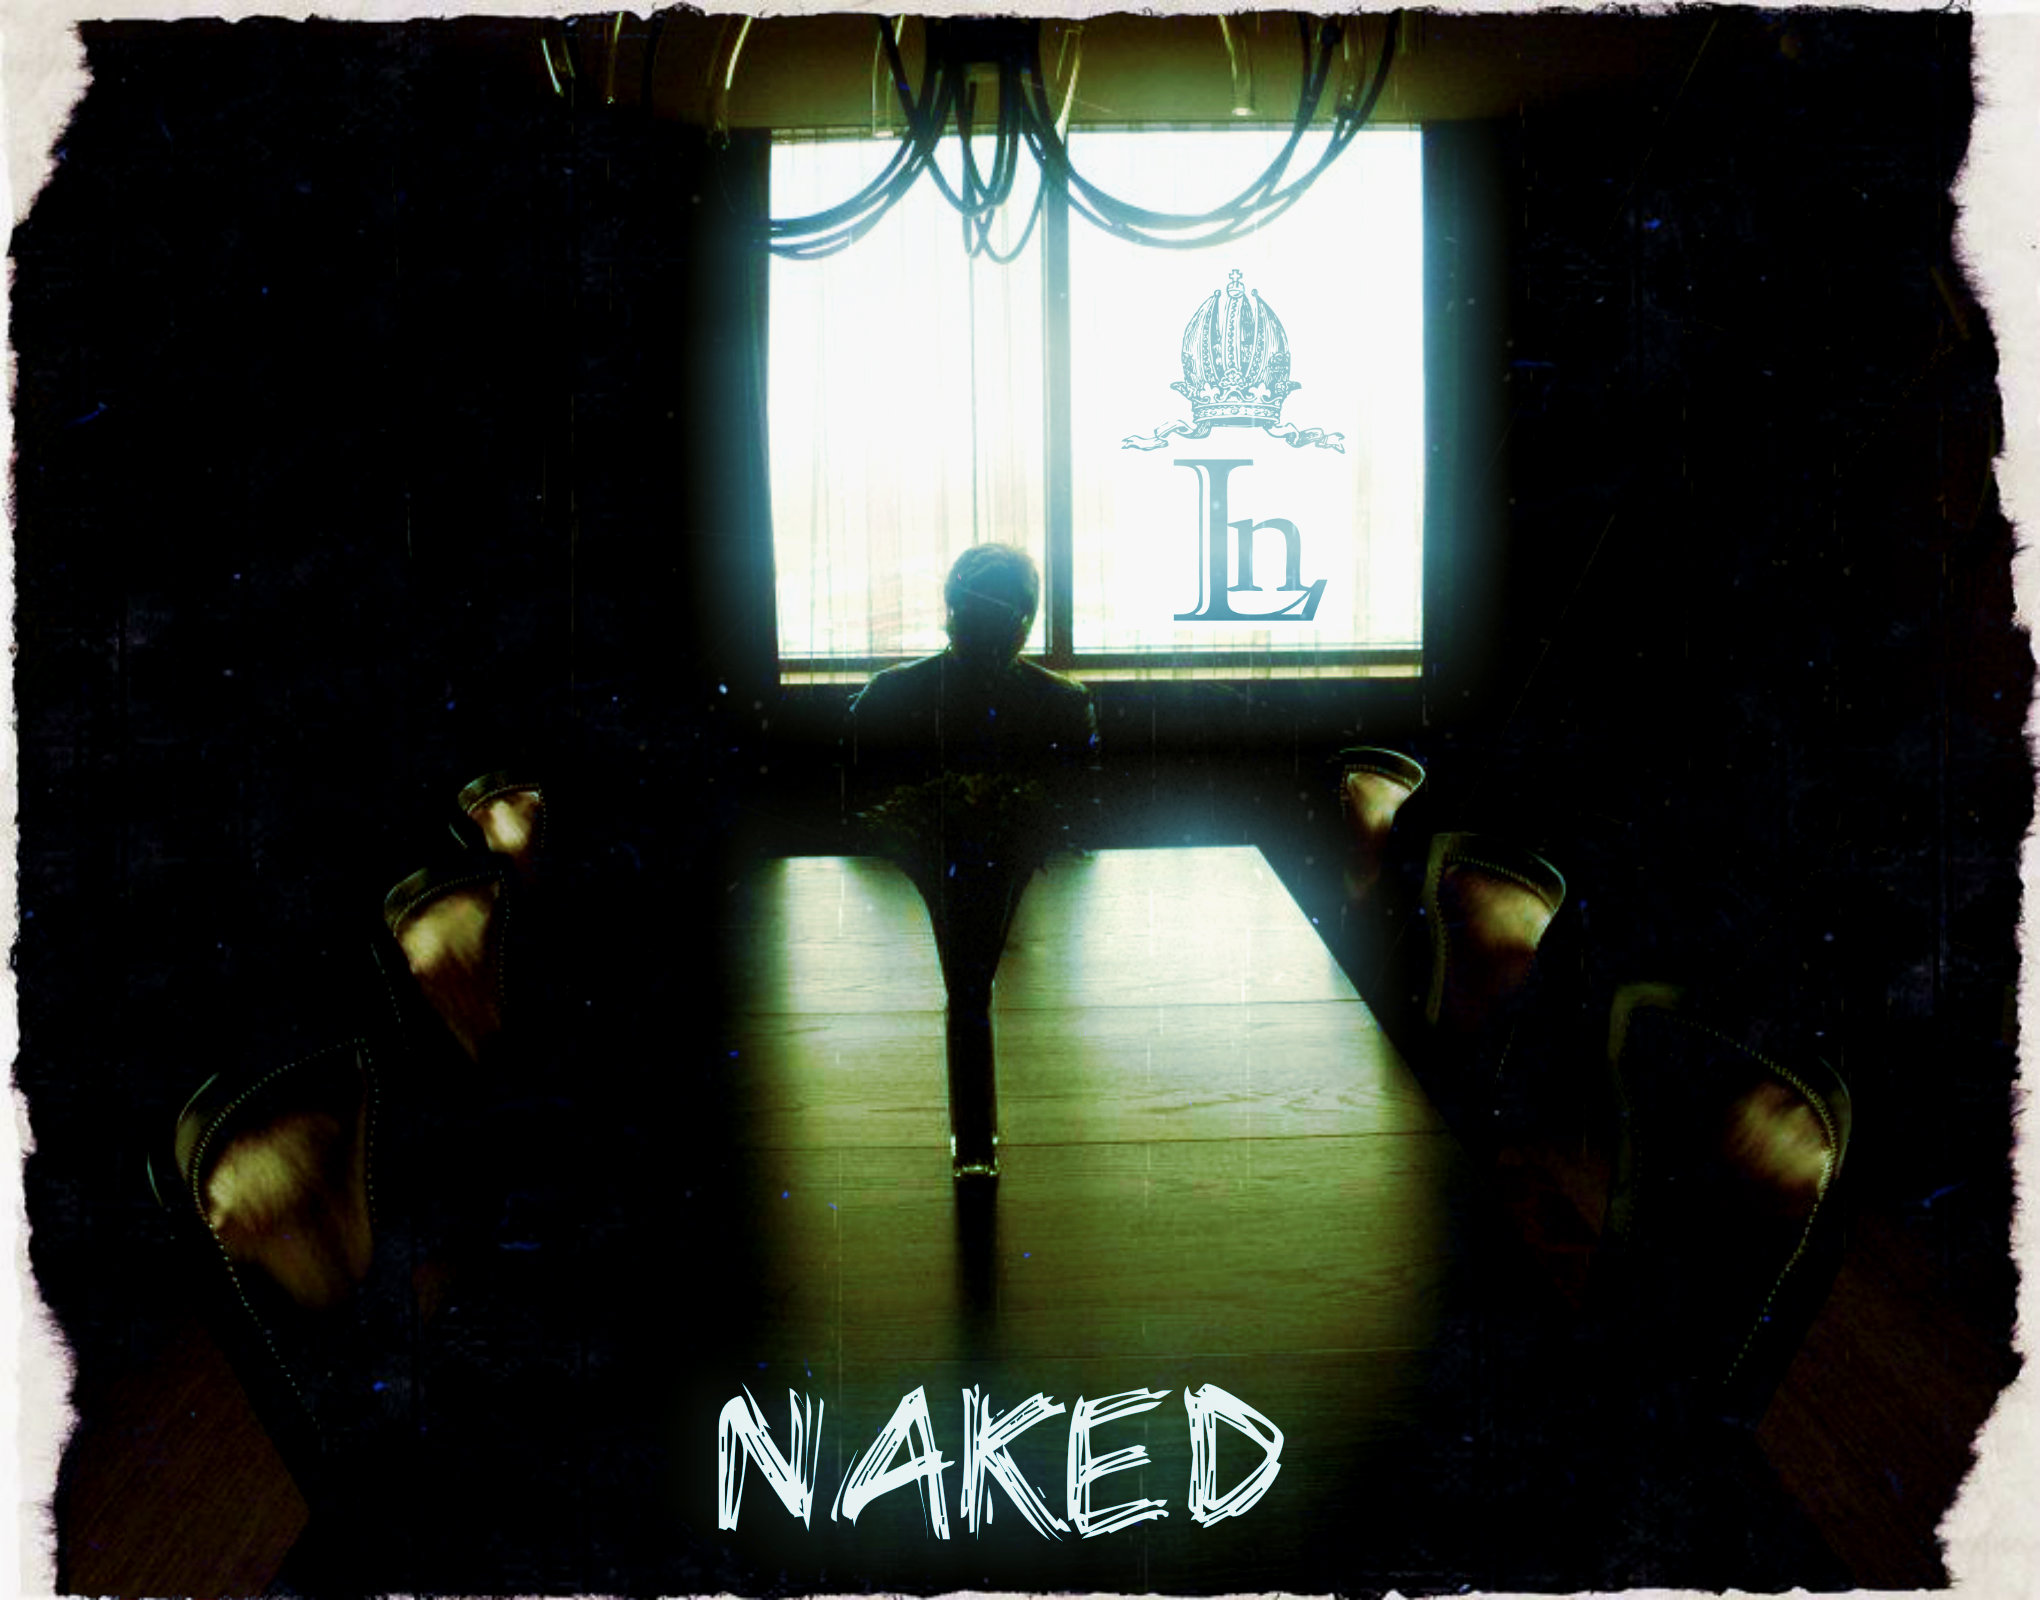 Lord North - Naked EP